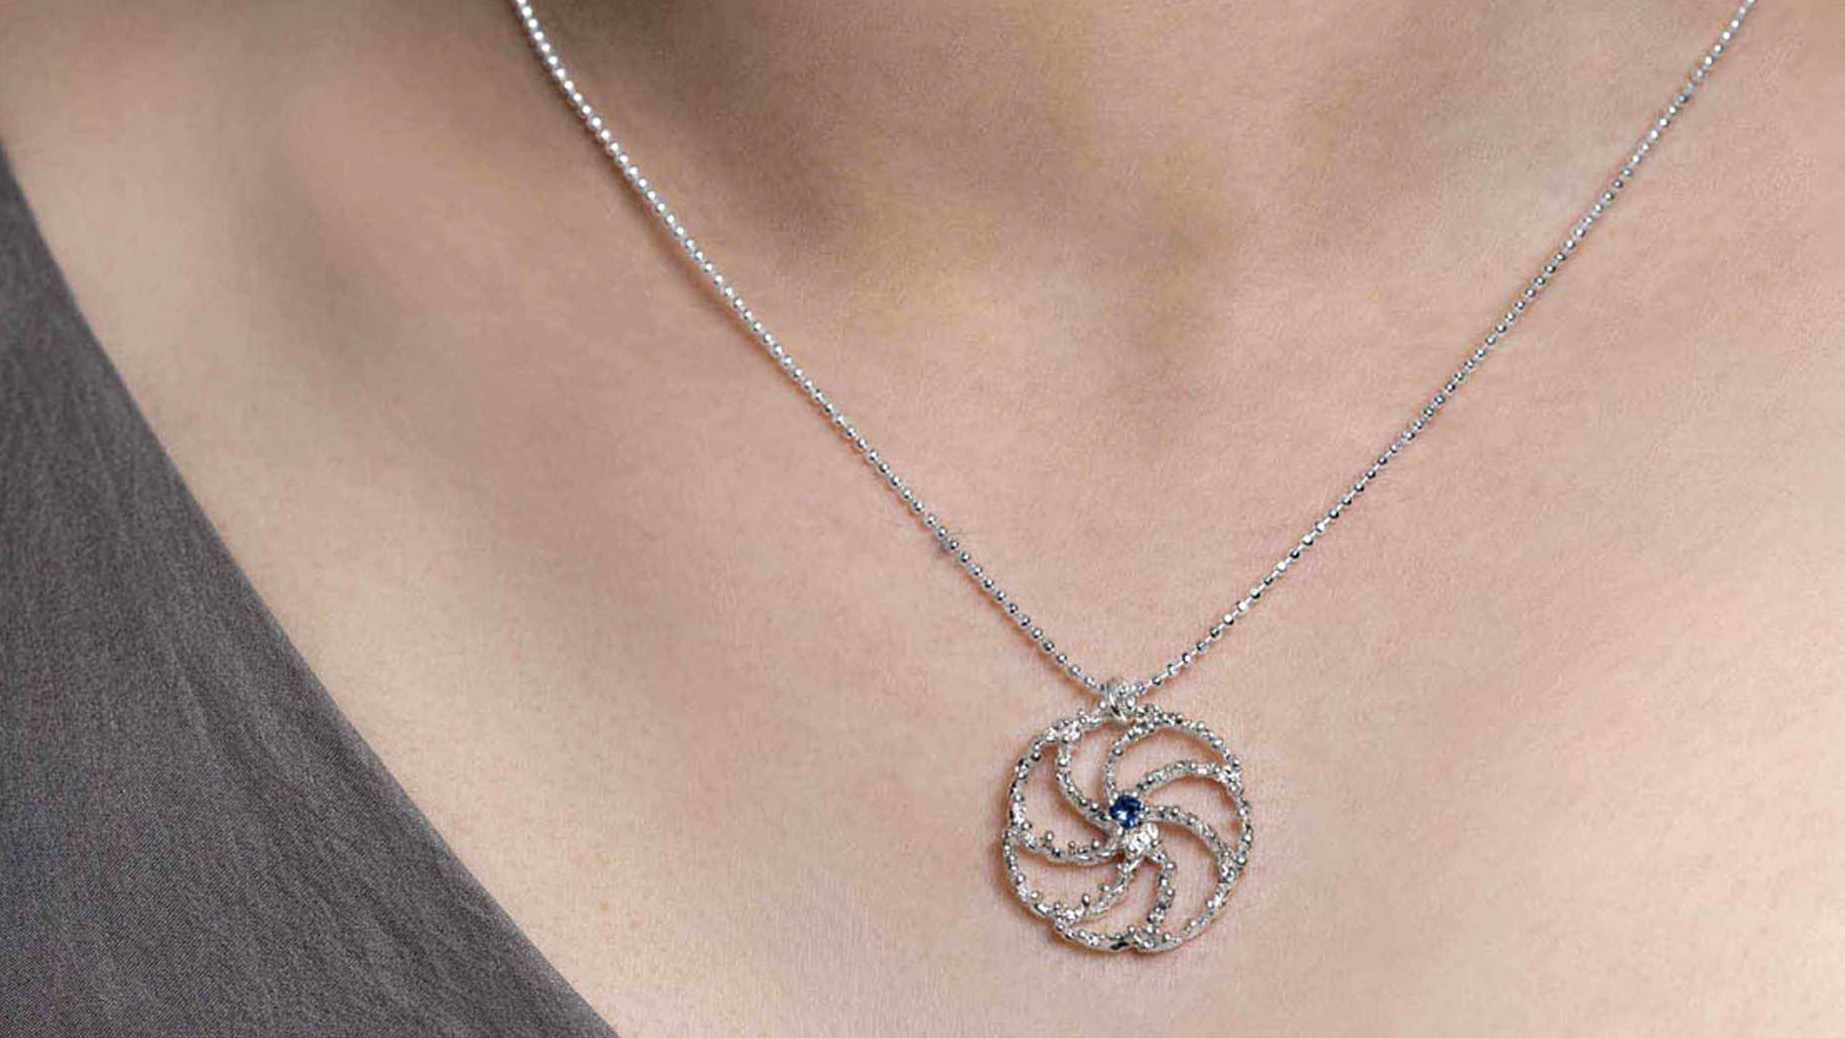 Asterias necklace by Aurum